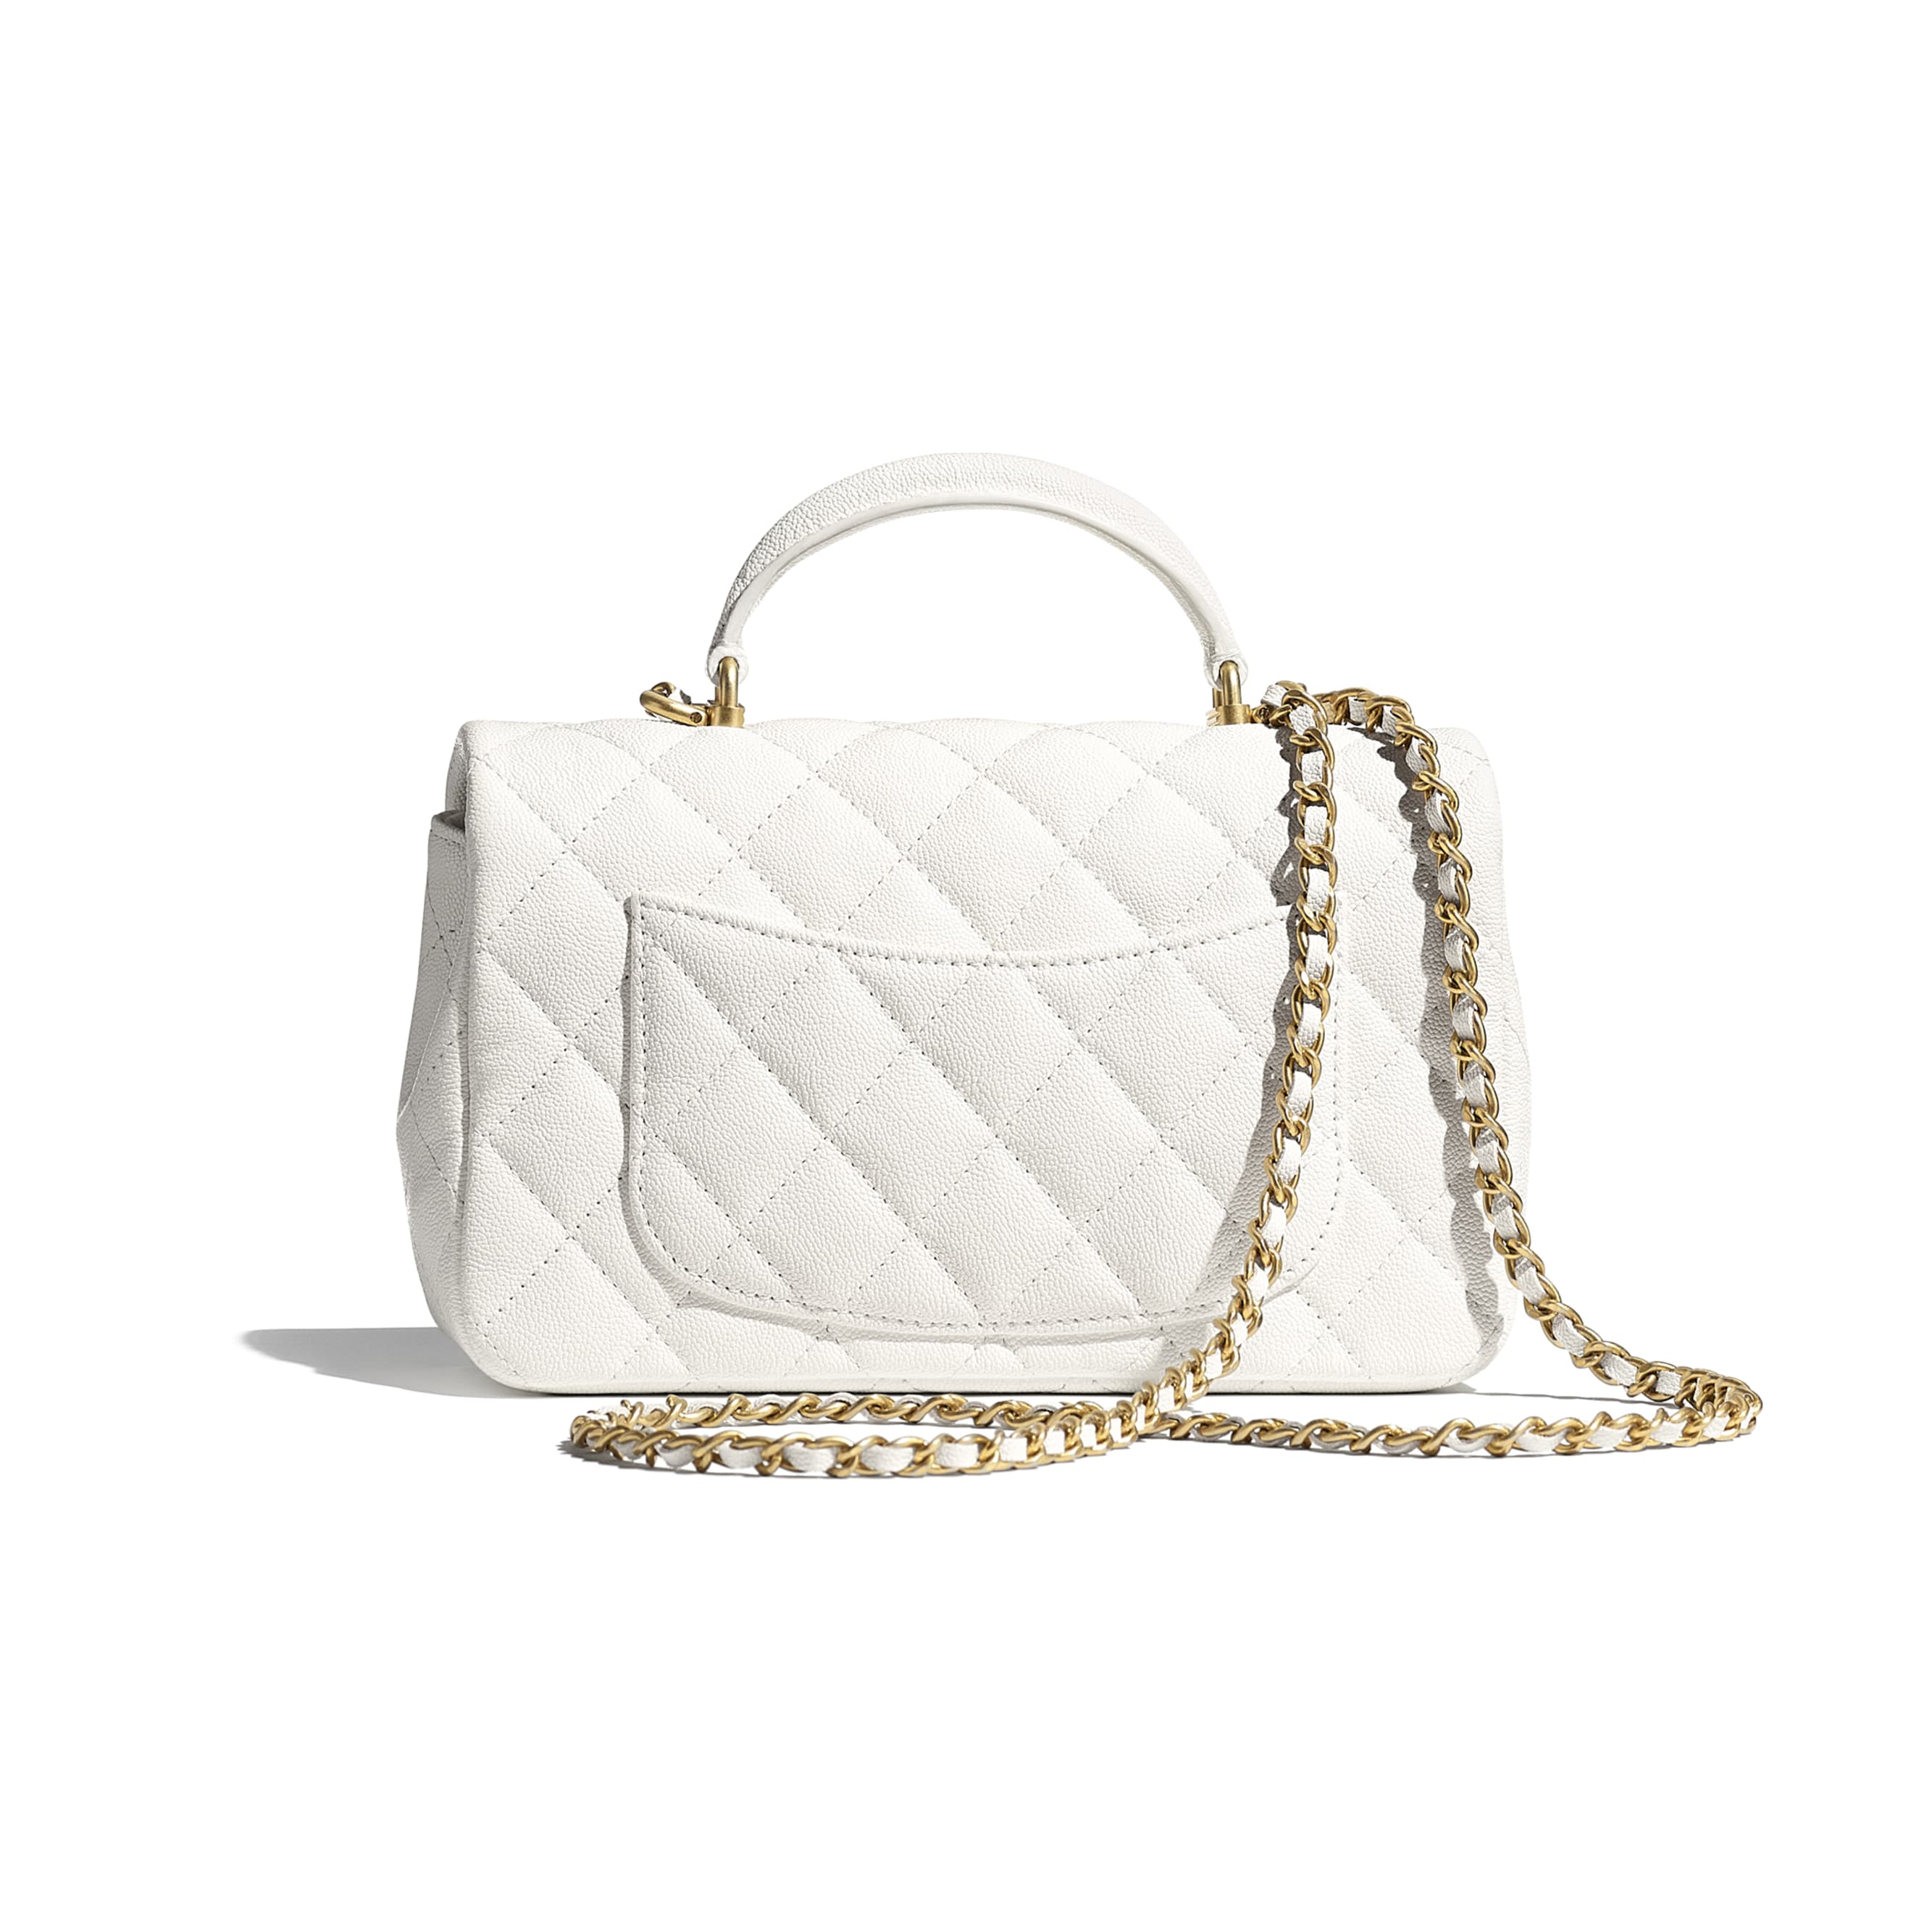 Mini Flap Bag with Top Handle - White - Grained Calfskin & Gold-Tone Metal - CHANEL - Alternative view - see standard sized version